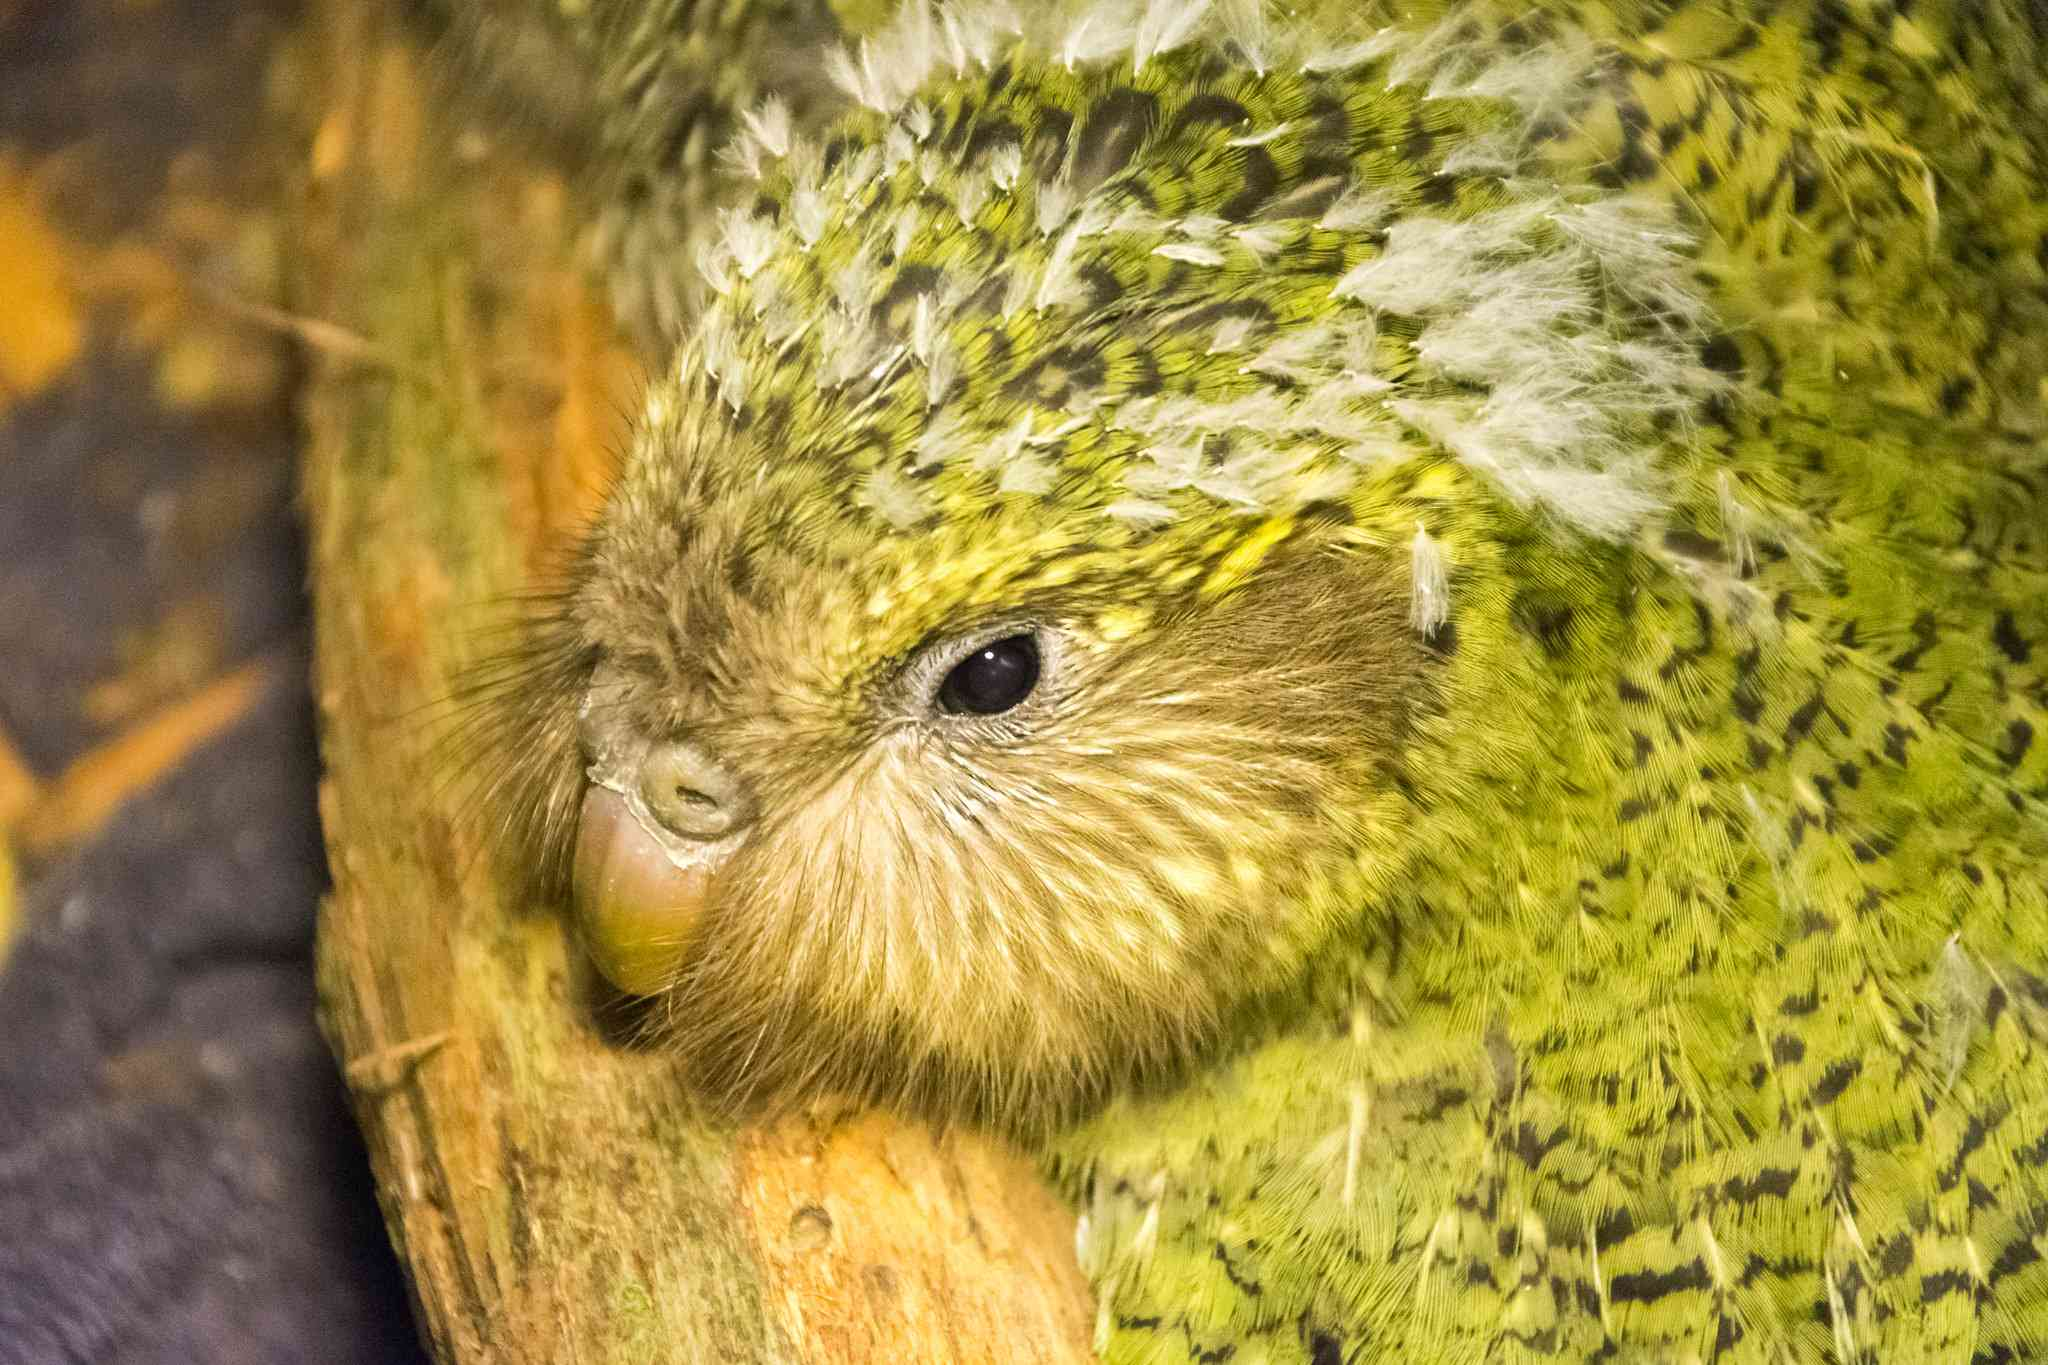 A Kakapo chick with fluffy white feathers.